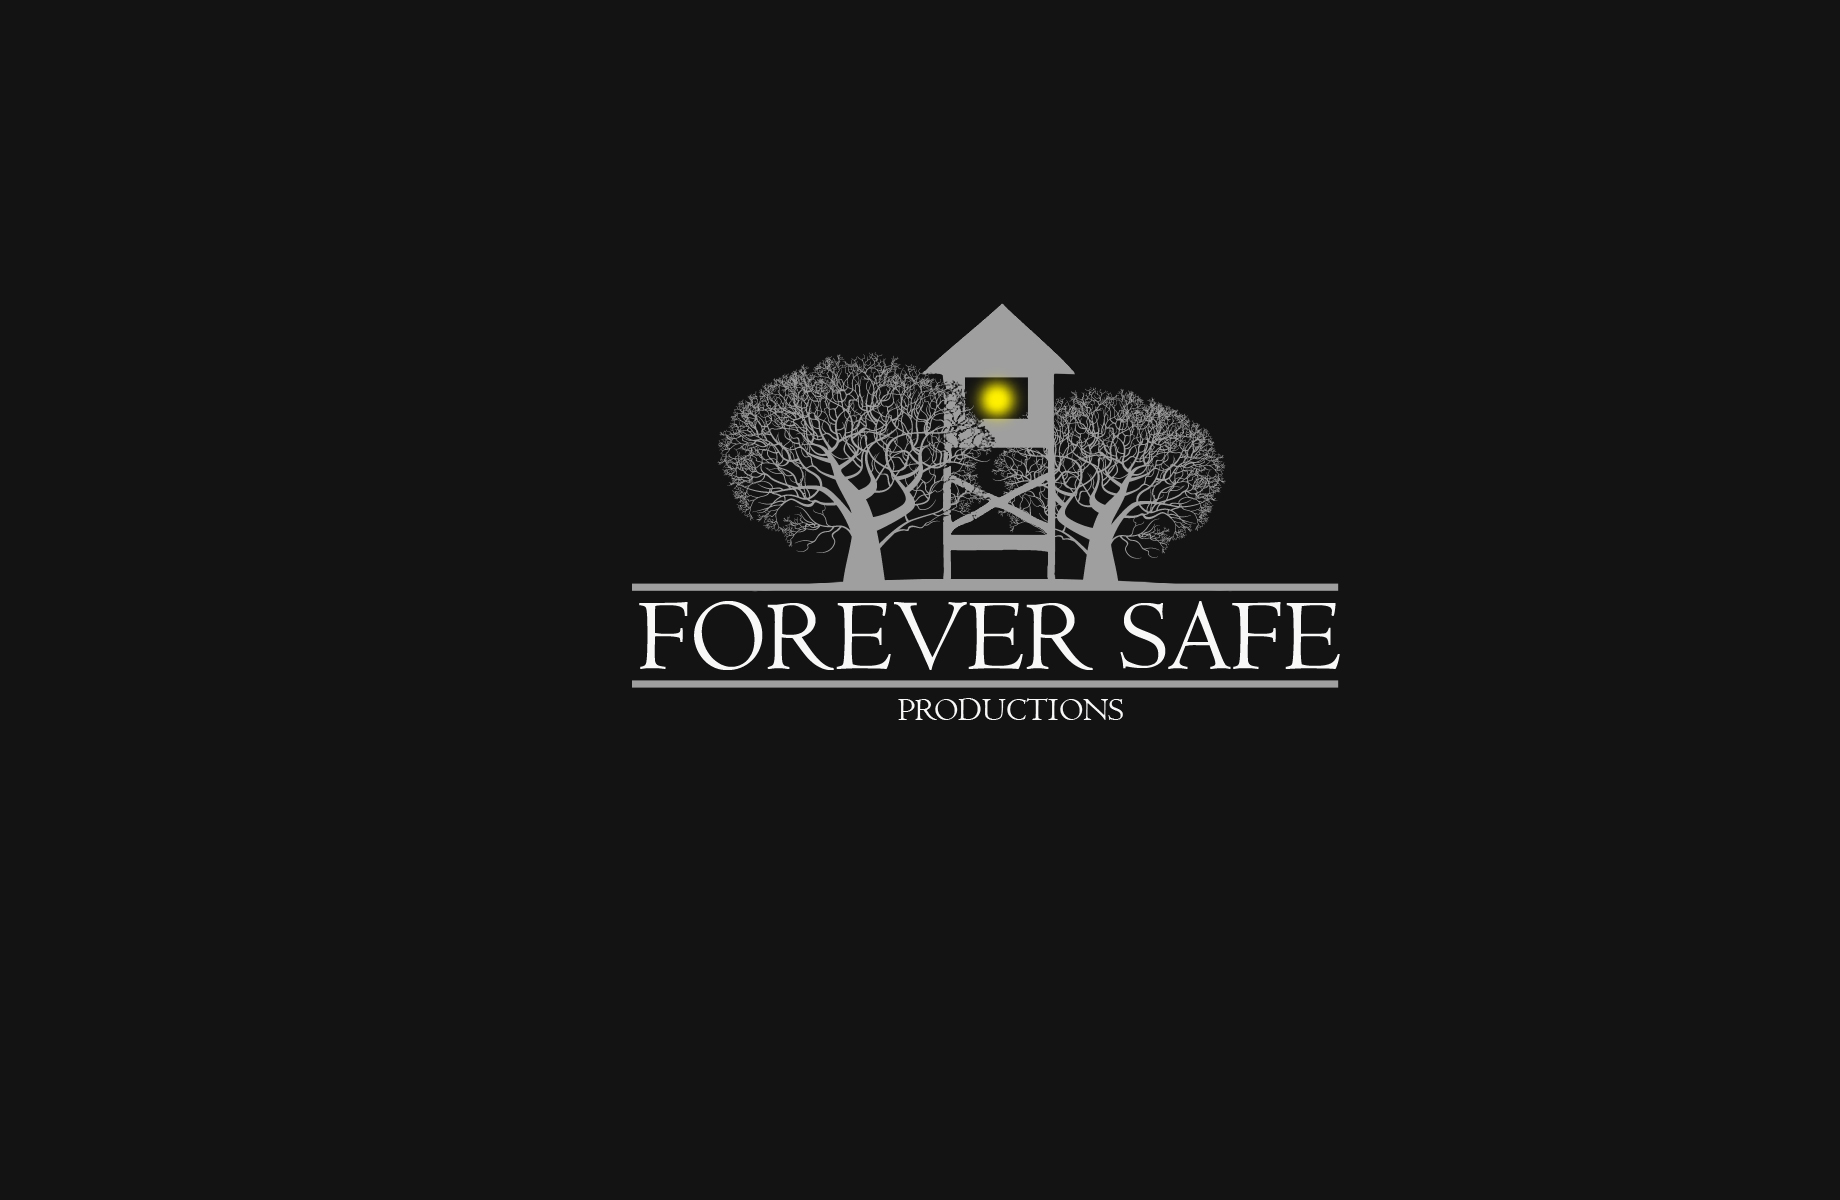 Logo Design by Jan Chua - Entry No. 18 in the Logo Design Contest Inspiring Logo Design for Forever Safe Productions.